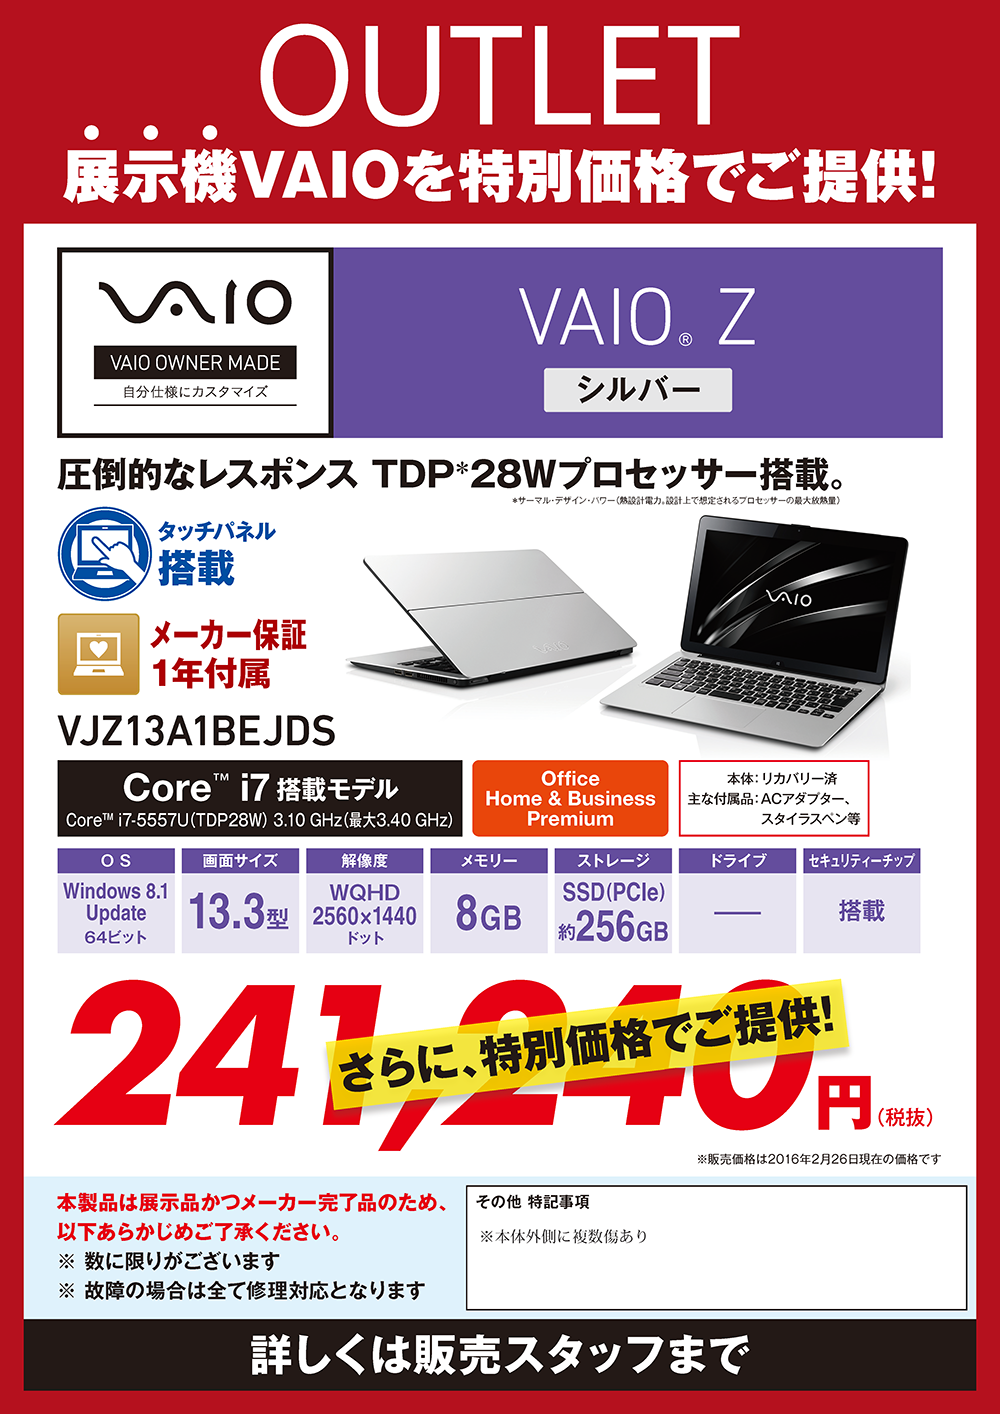 VAIO_outlet-price_ページ_10